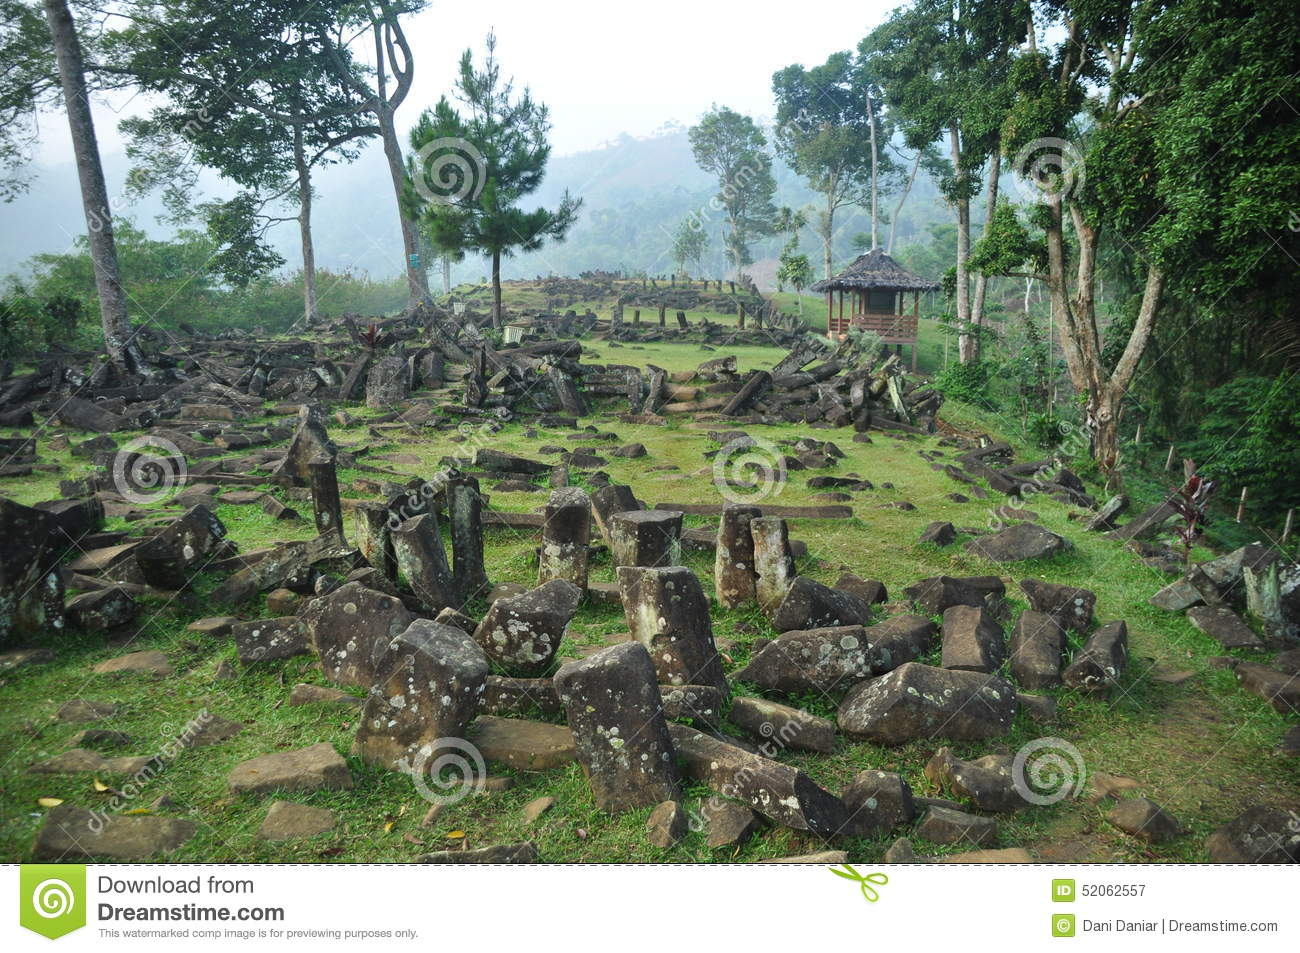 padang black personals The archaeological establishment is scrambling to find reason to reject the extraordinary excavations taking place at gunung padang indonesia.